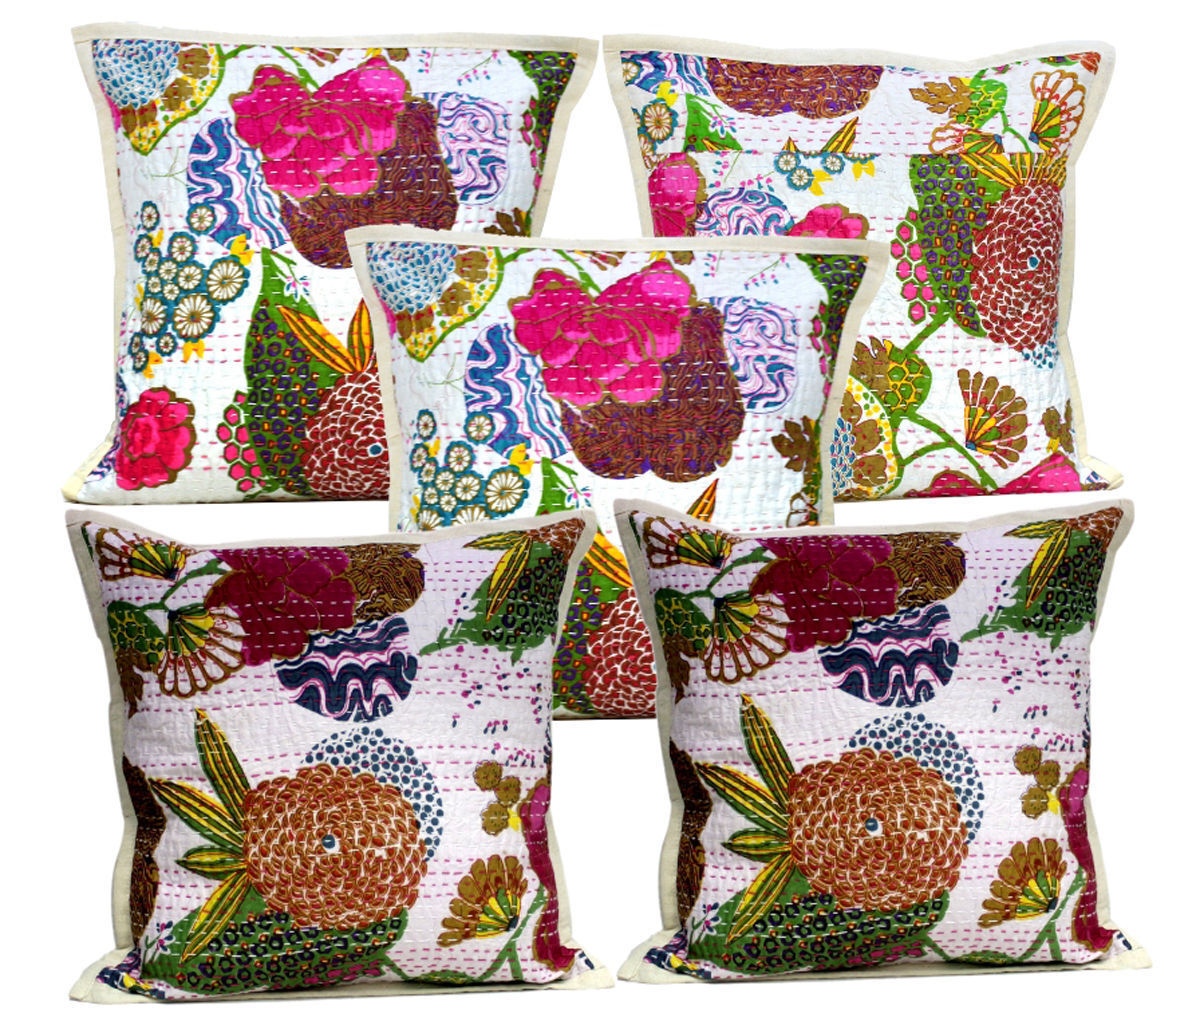 10Pcs Ethnic Home Decor Traditional Indian Kantha Floral Cushion Covers AIC801